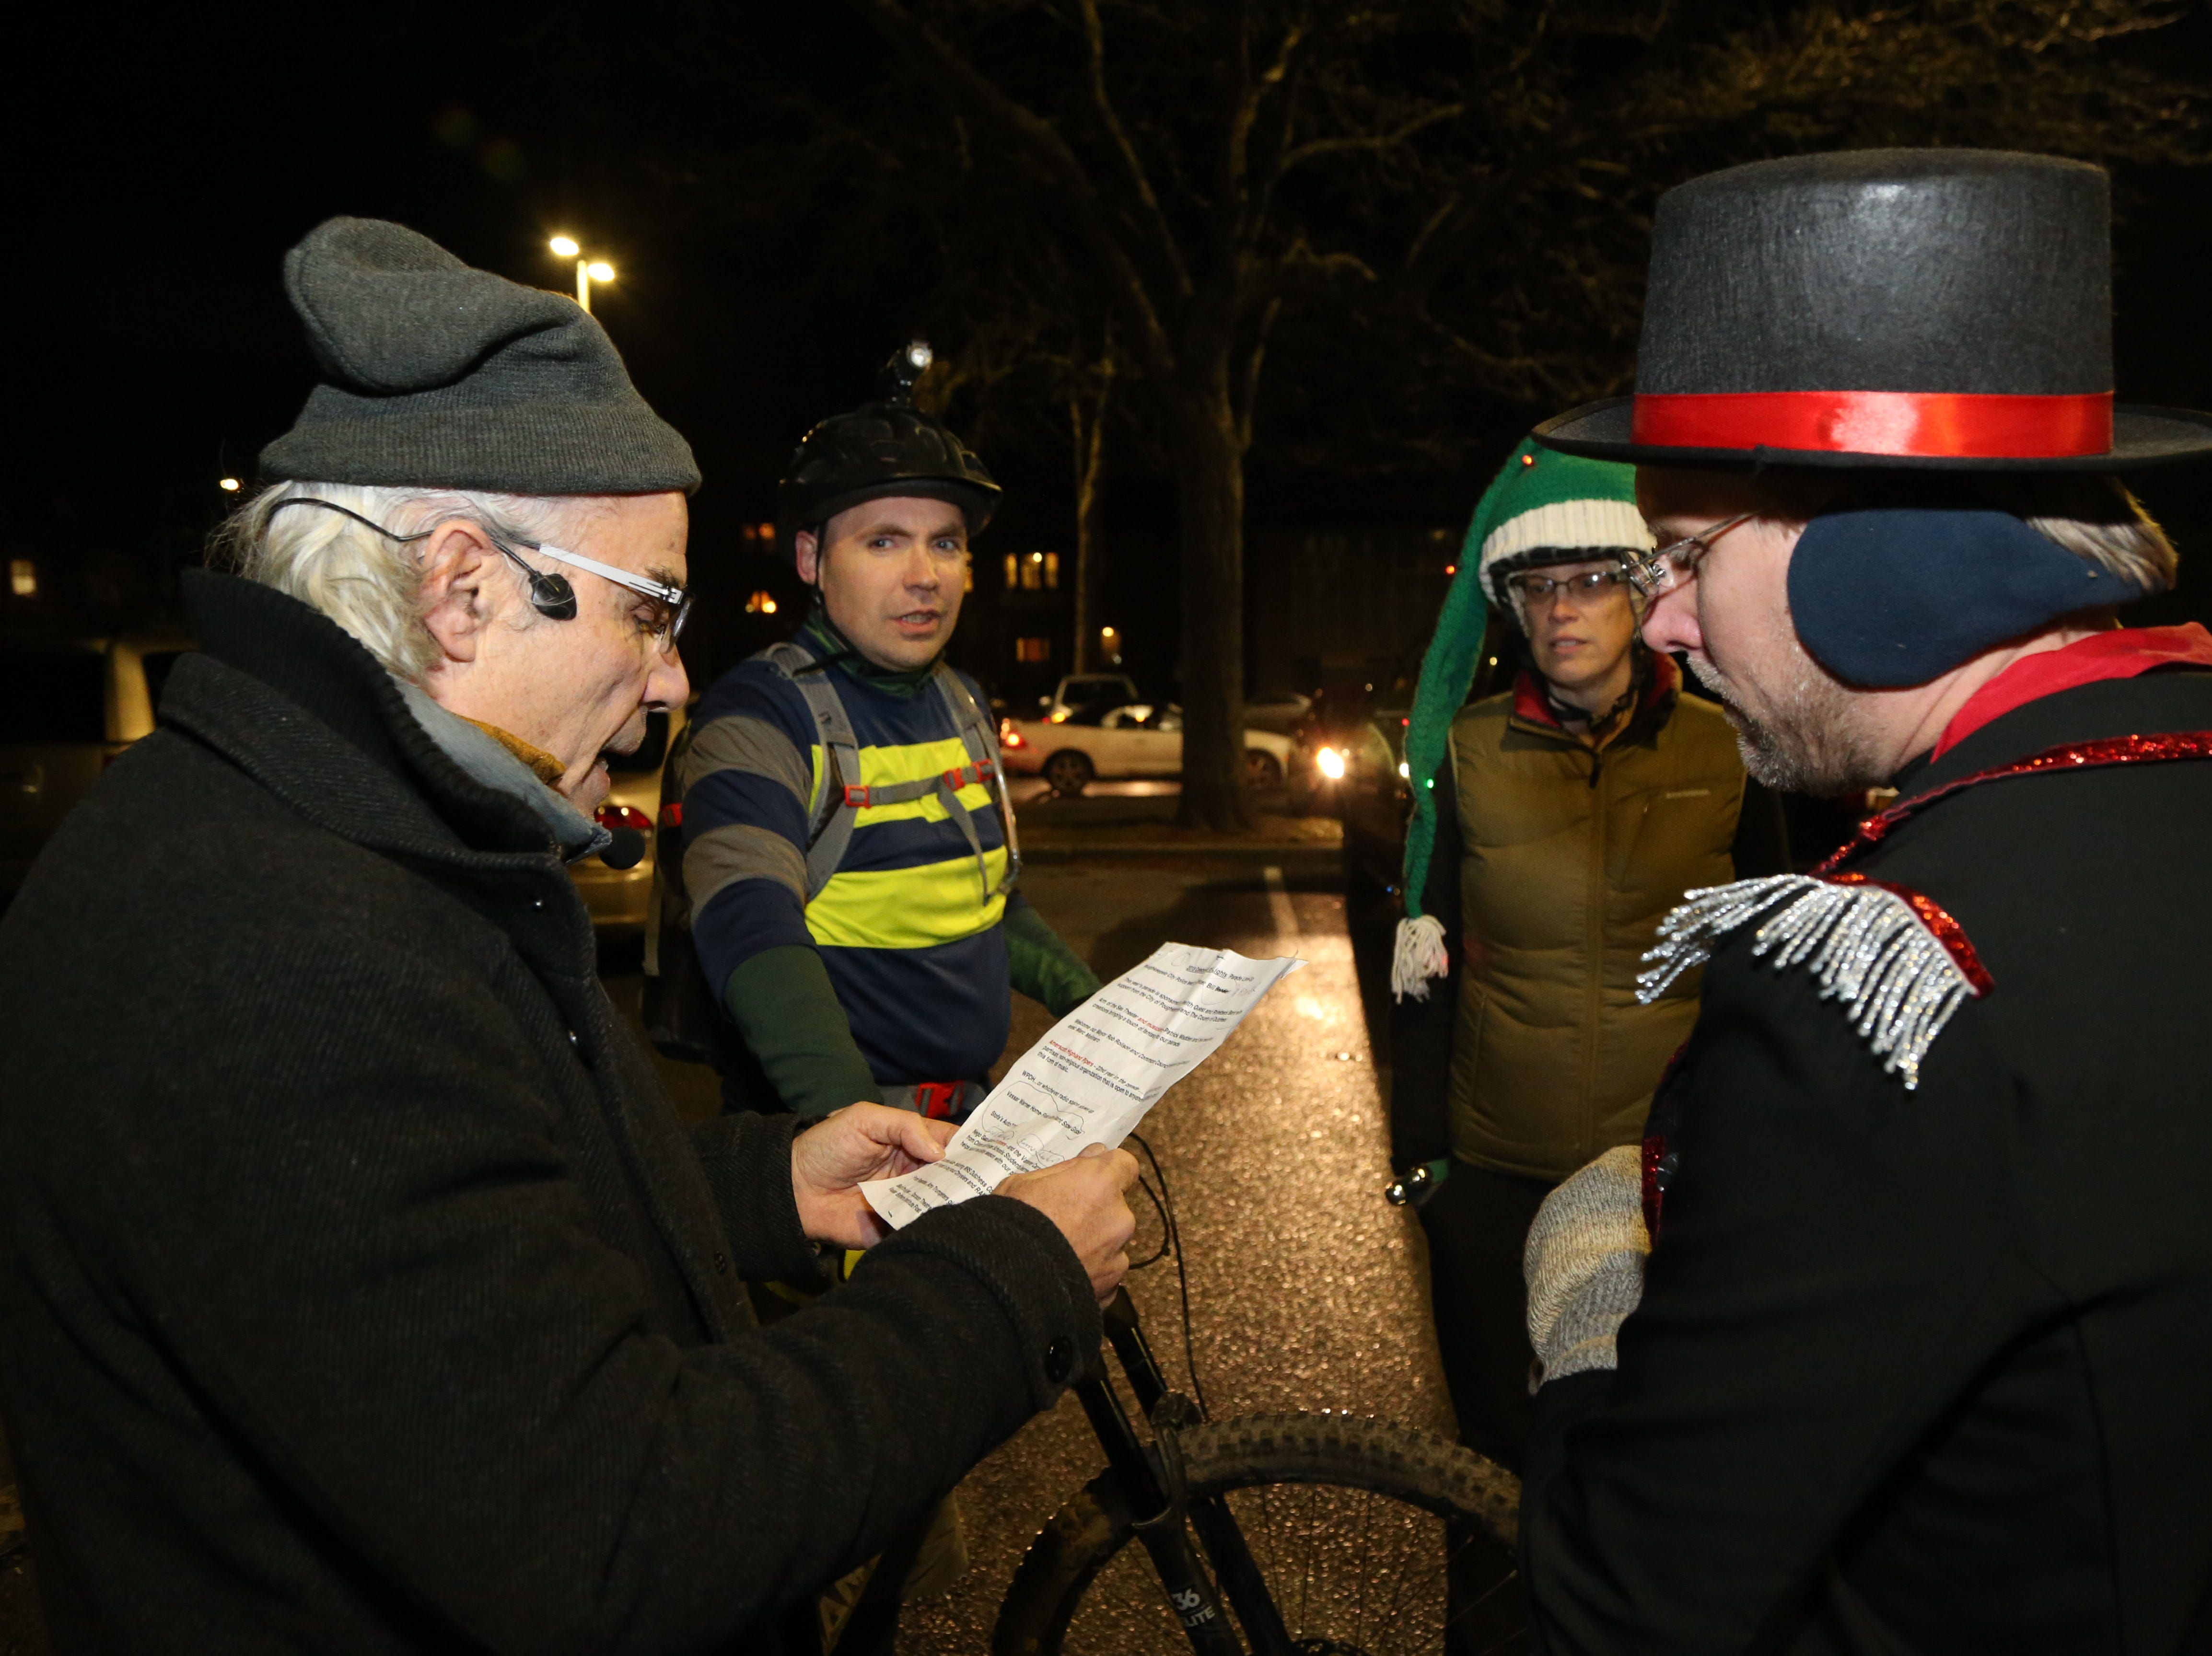 Bardavon executive director Chris Silva speaks with, representatives from the Fats in the Cats Bicycle Club, from left, Mike White, Cara Gentry and Frank Richards  before the start of the Celebration of Lights Parade in the City of Poughkeepsie on November 30, 2018.